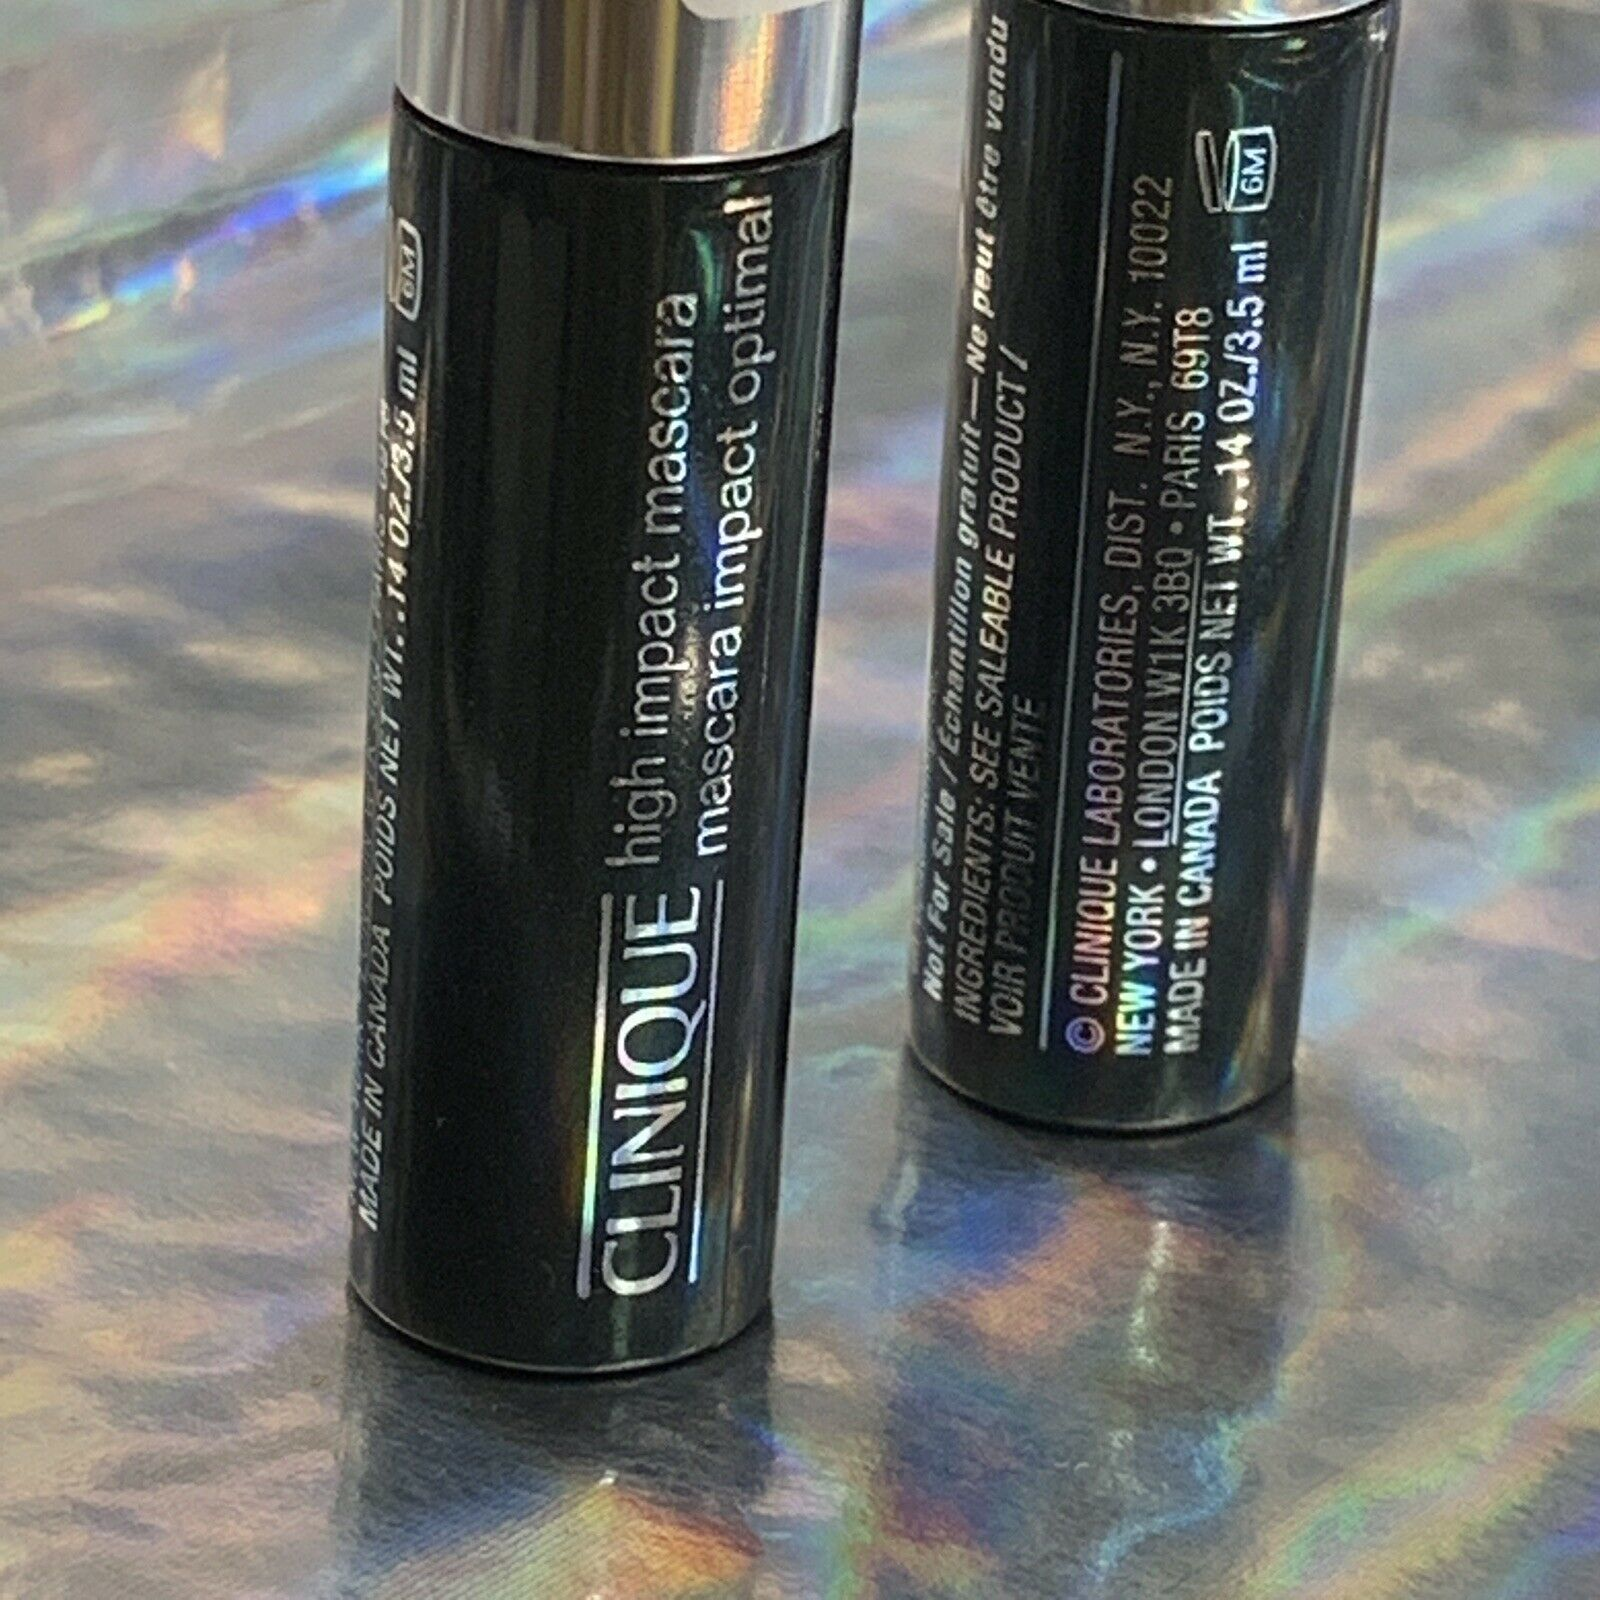 Clinique High Impact Mascara 01 Black 3.5mL *note size* Lot Of 2